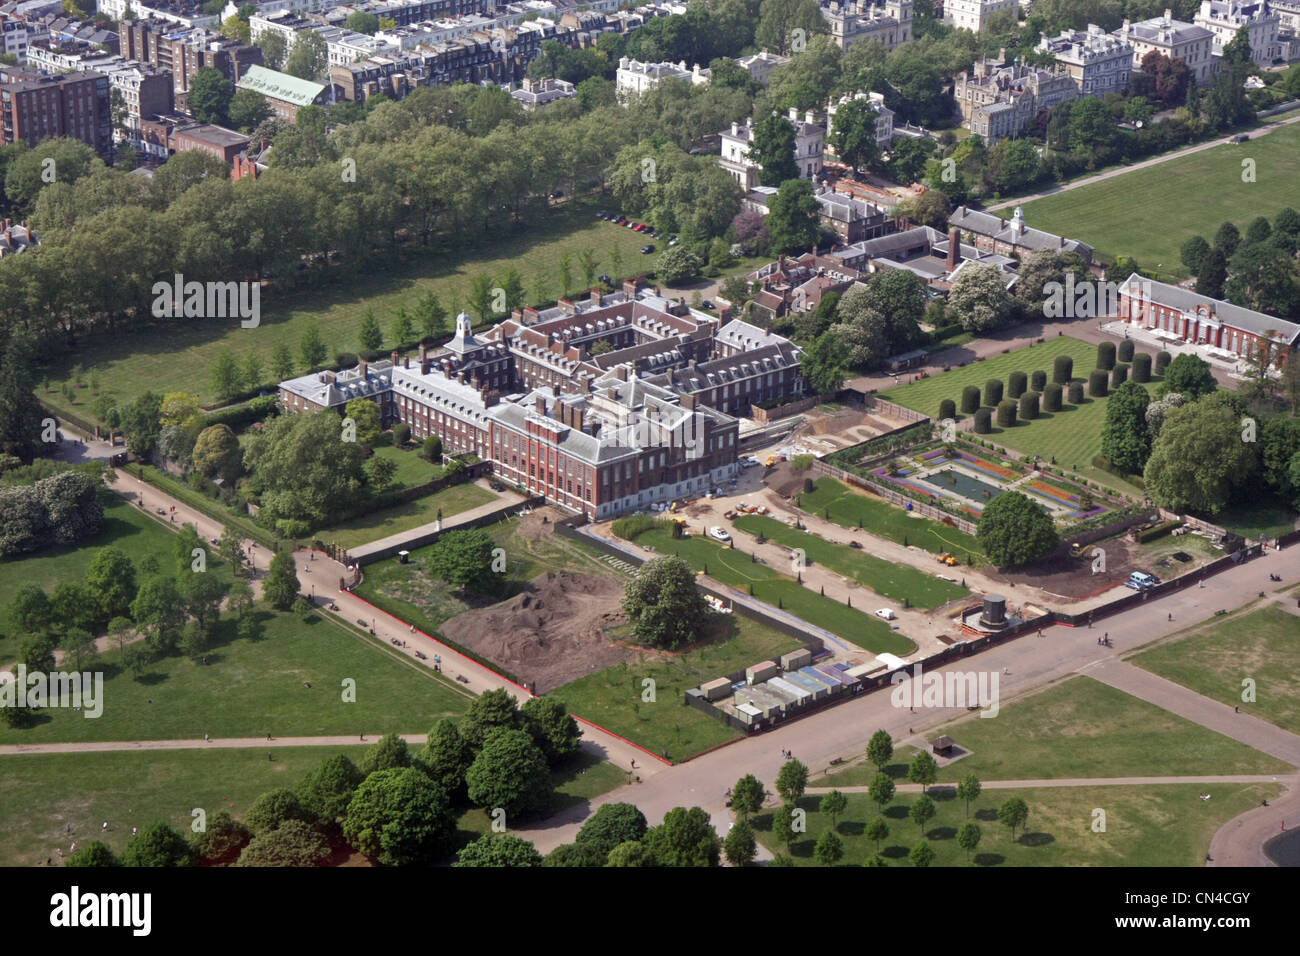 Row House Floor Plan Aerial View Of Kensington Palace The Broad Walk At The